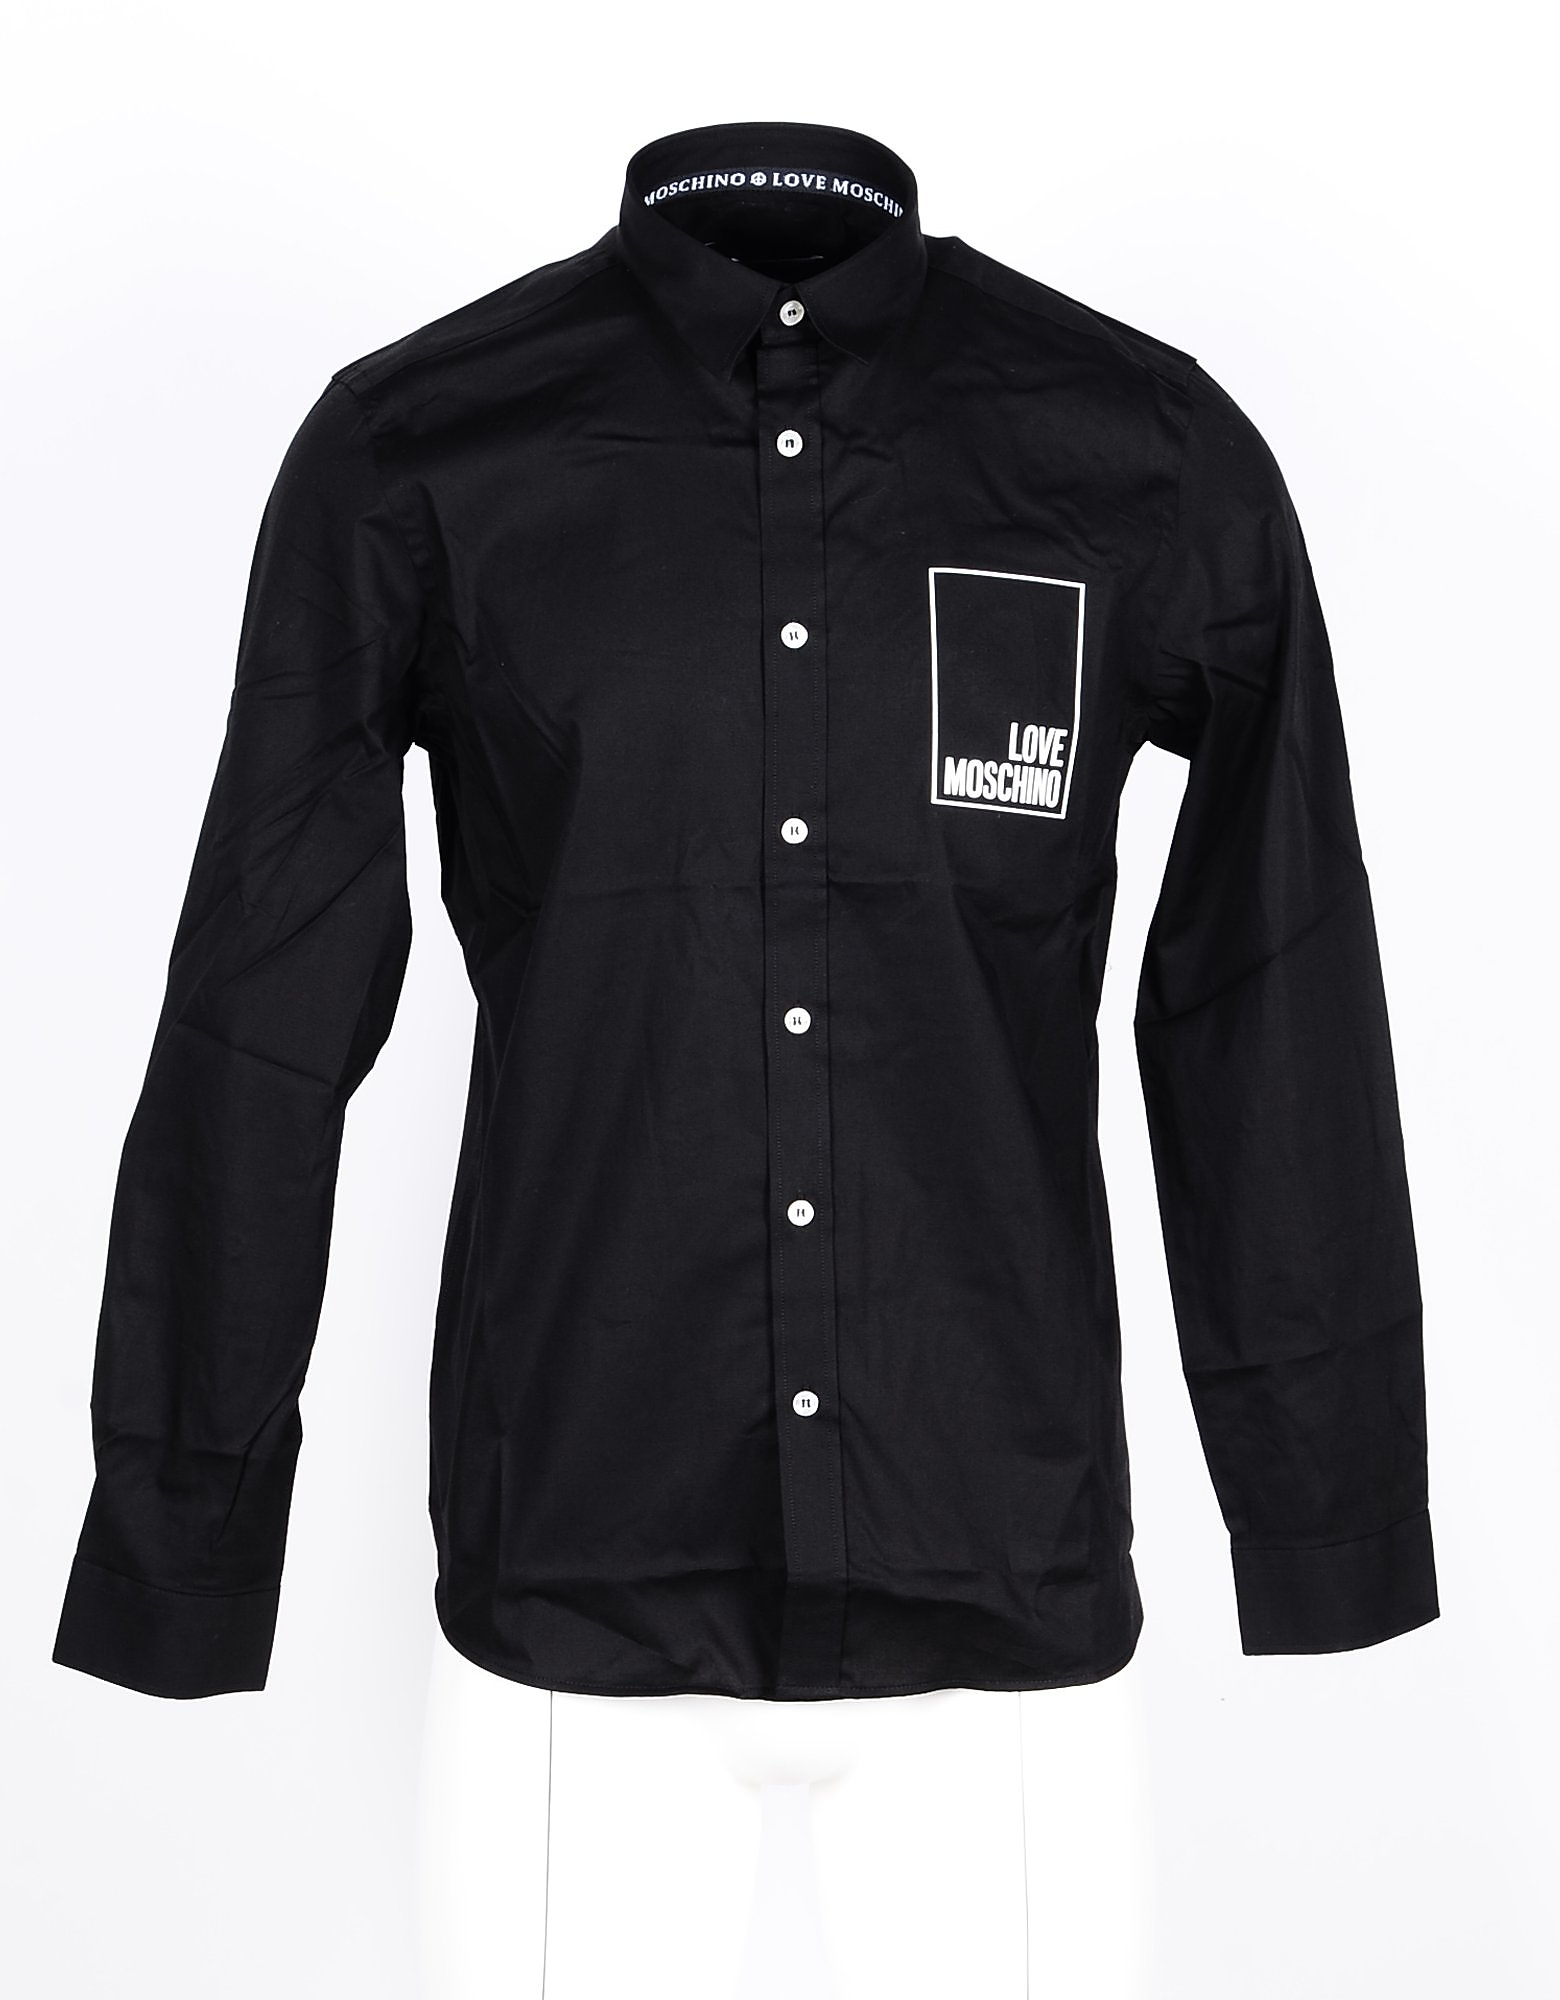 Love Moschino Designer Shirts, Black Cotton Men's Shirt